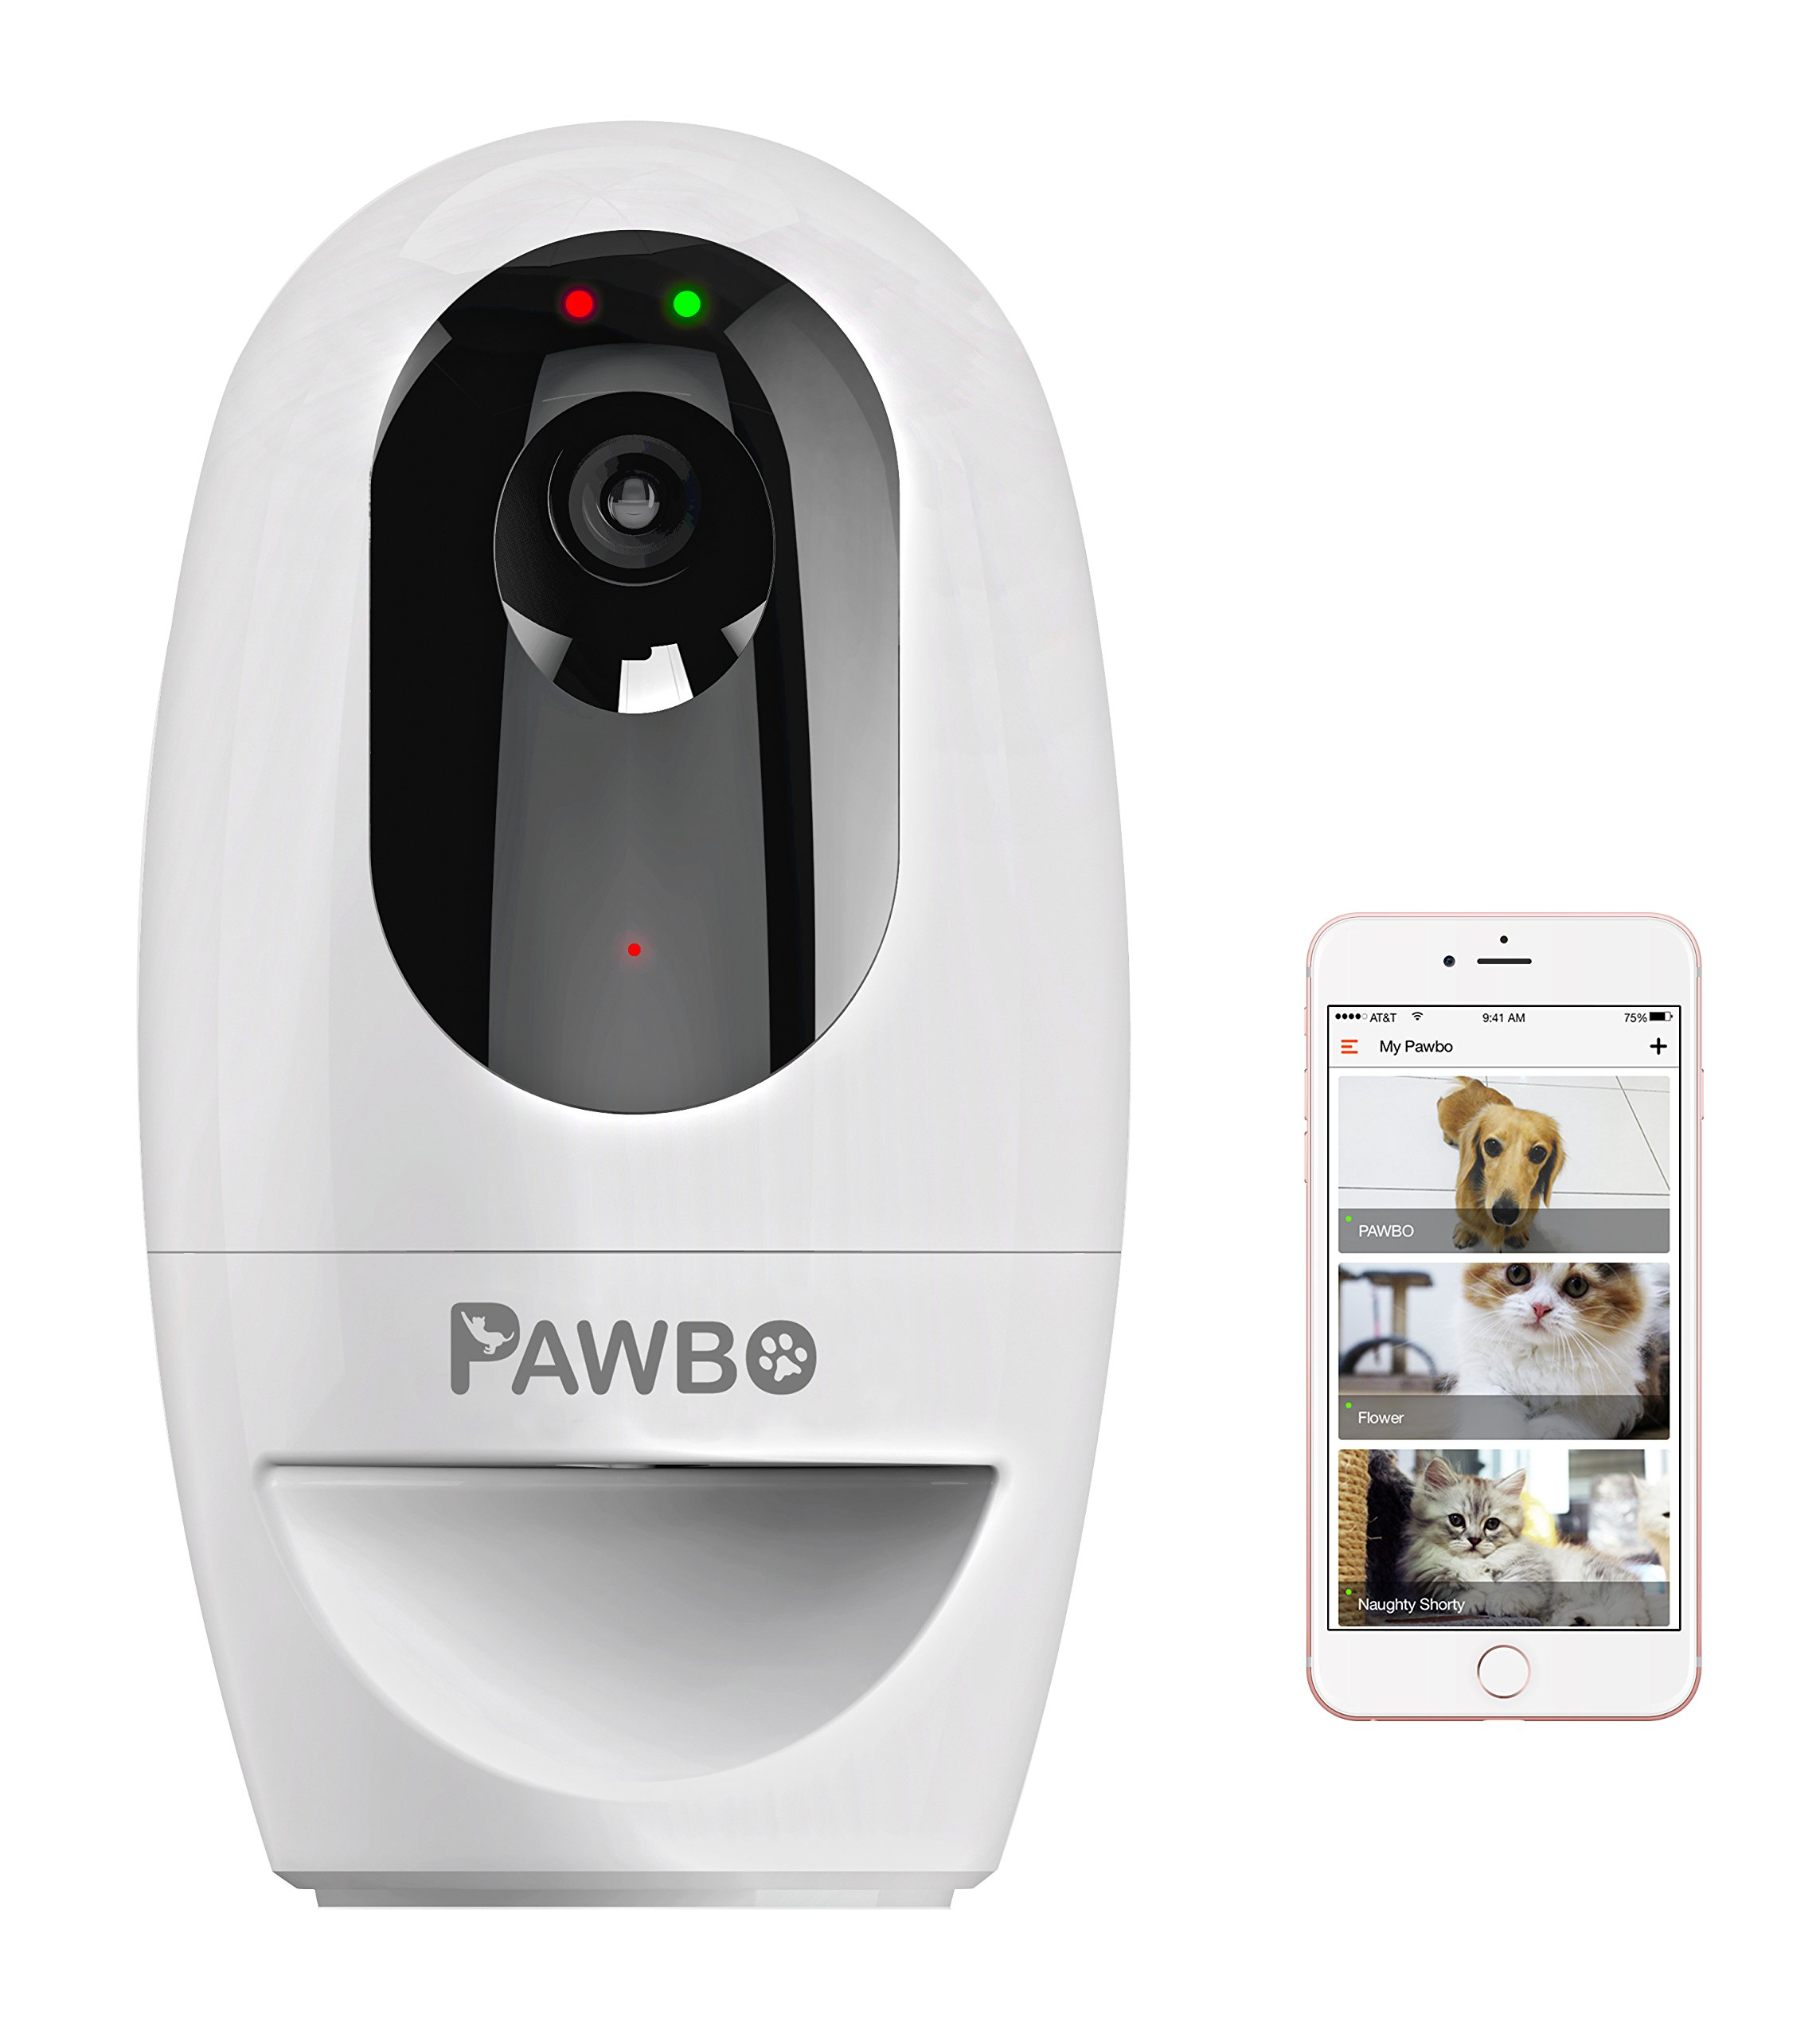 Pawbo Life Wi-Fi Pet Camera: 720p HD Video, 2-Way Audio, Video Recording, Treat Dispenser, and Laser Game by Pawbo